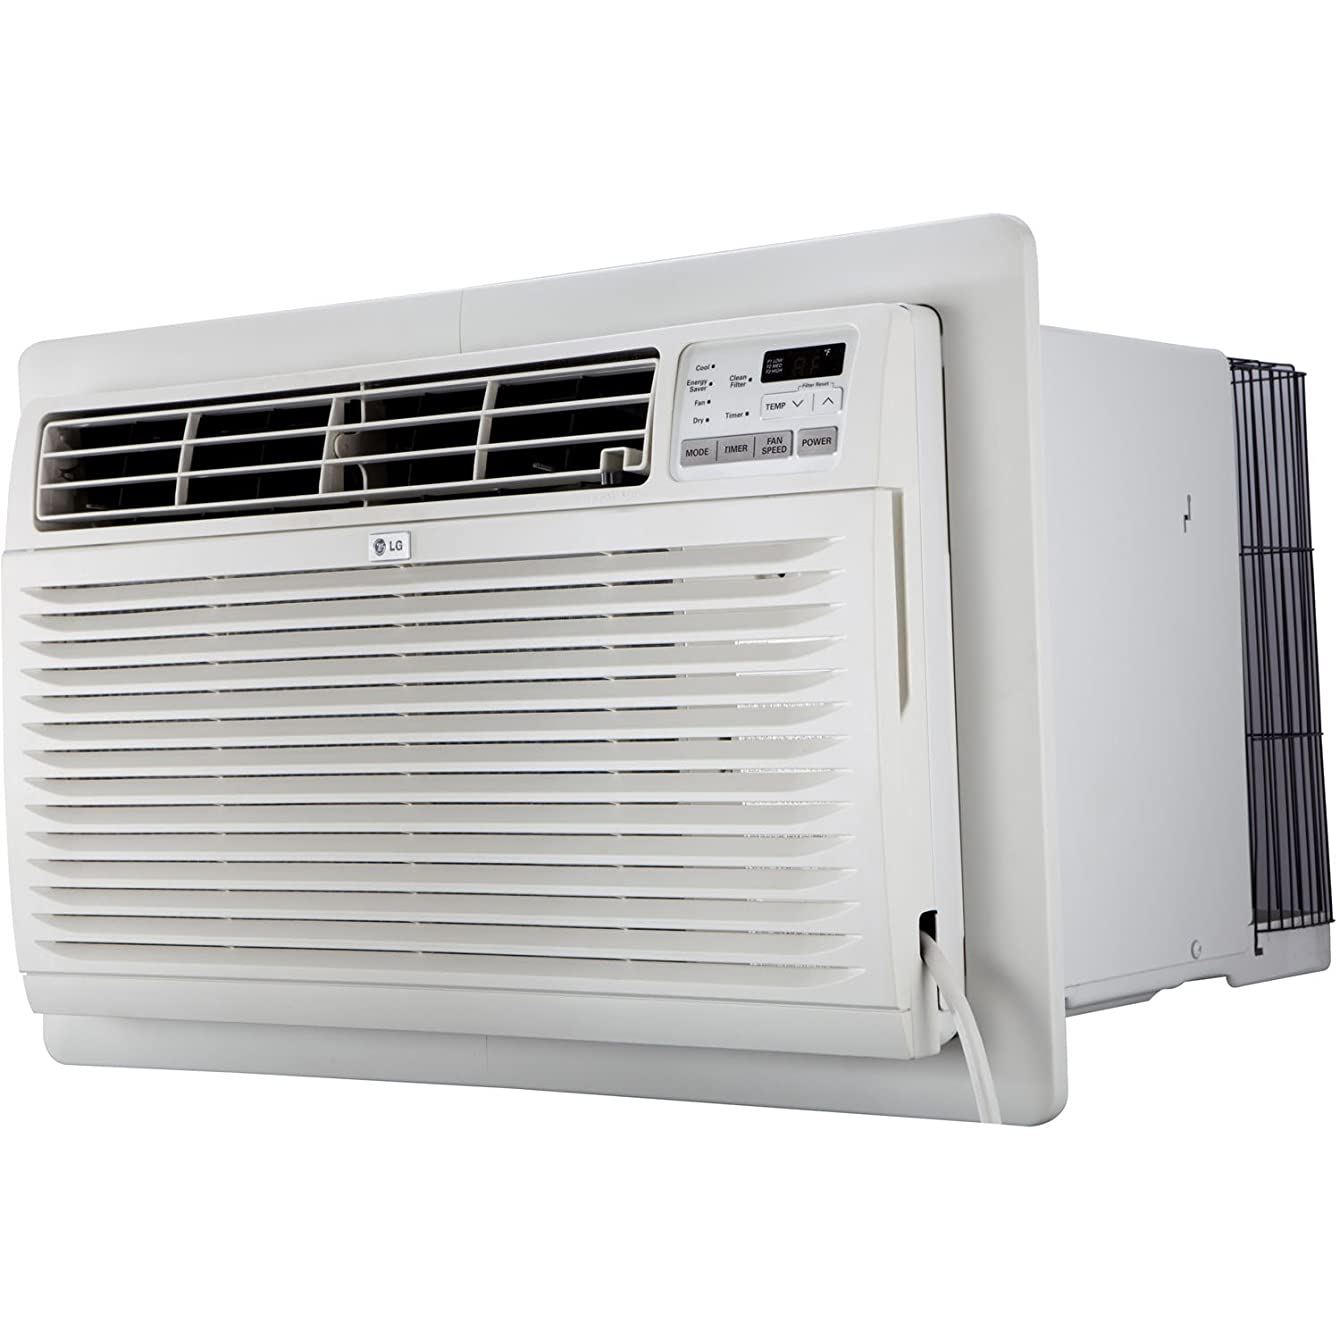 LG LT1236CER 11,500 BTU 230V Through-The-Wall Remote Control Air Conditioner, White